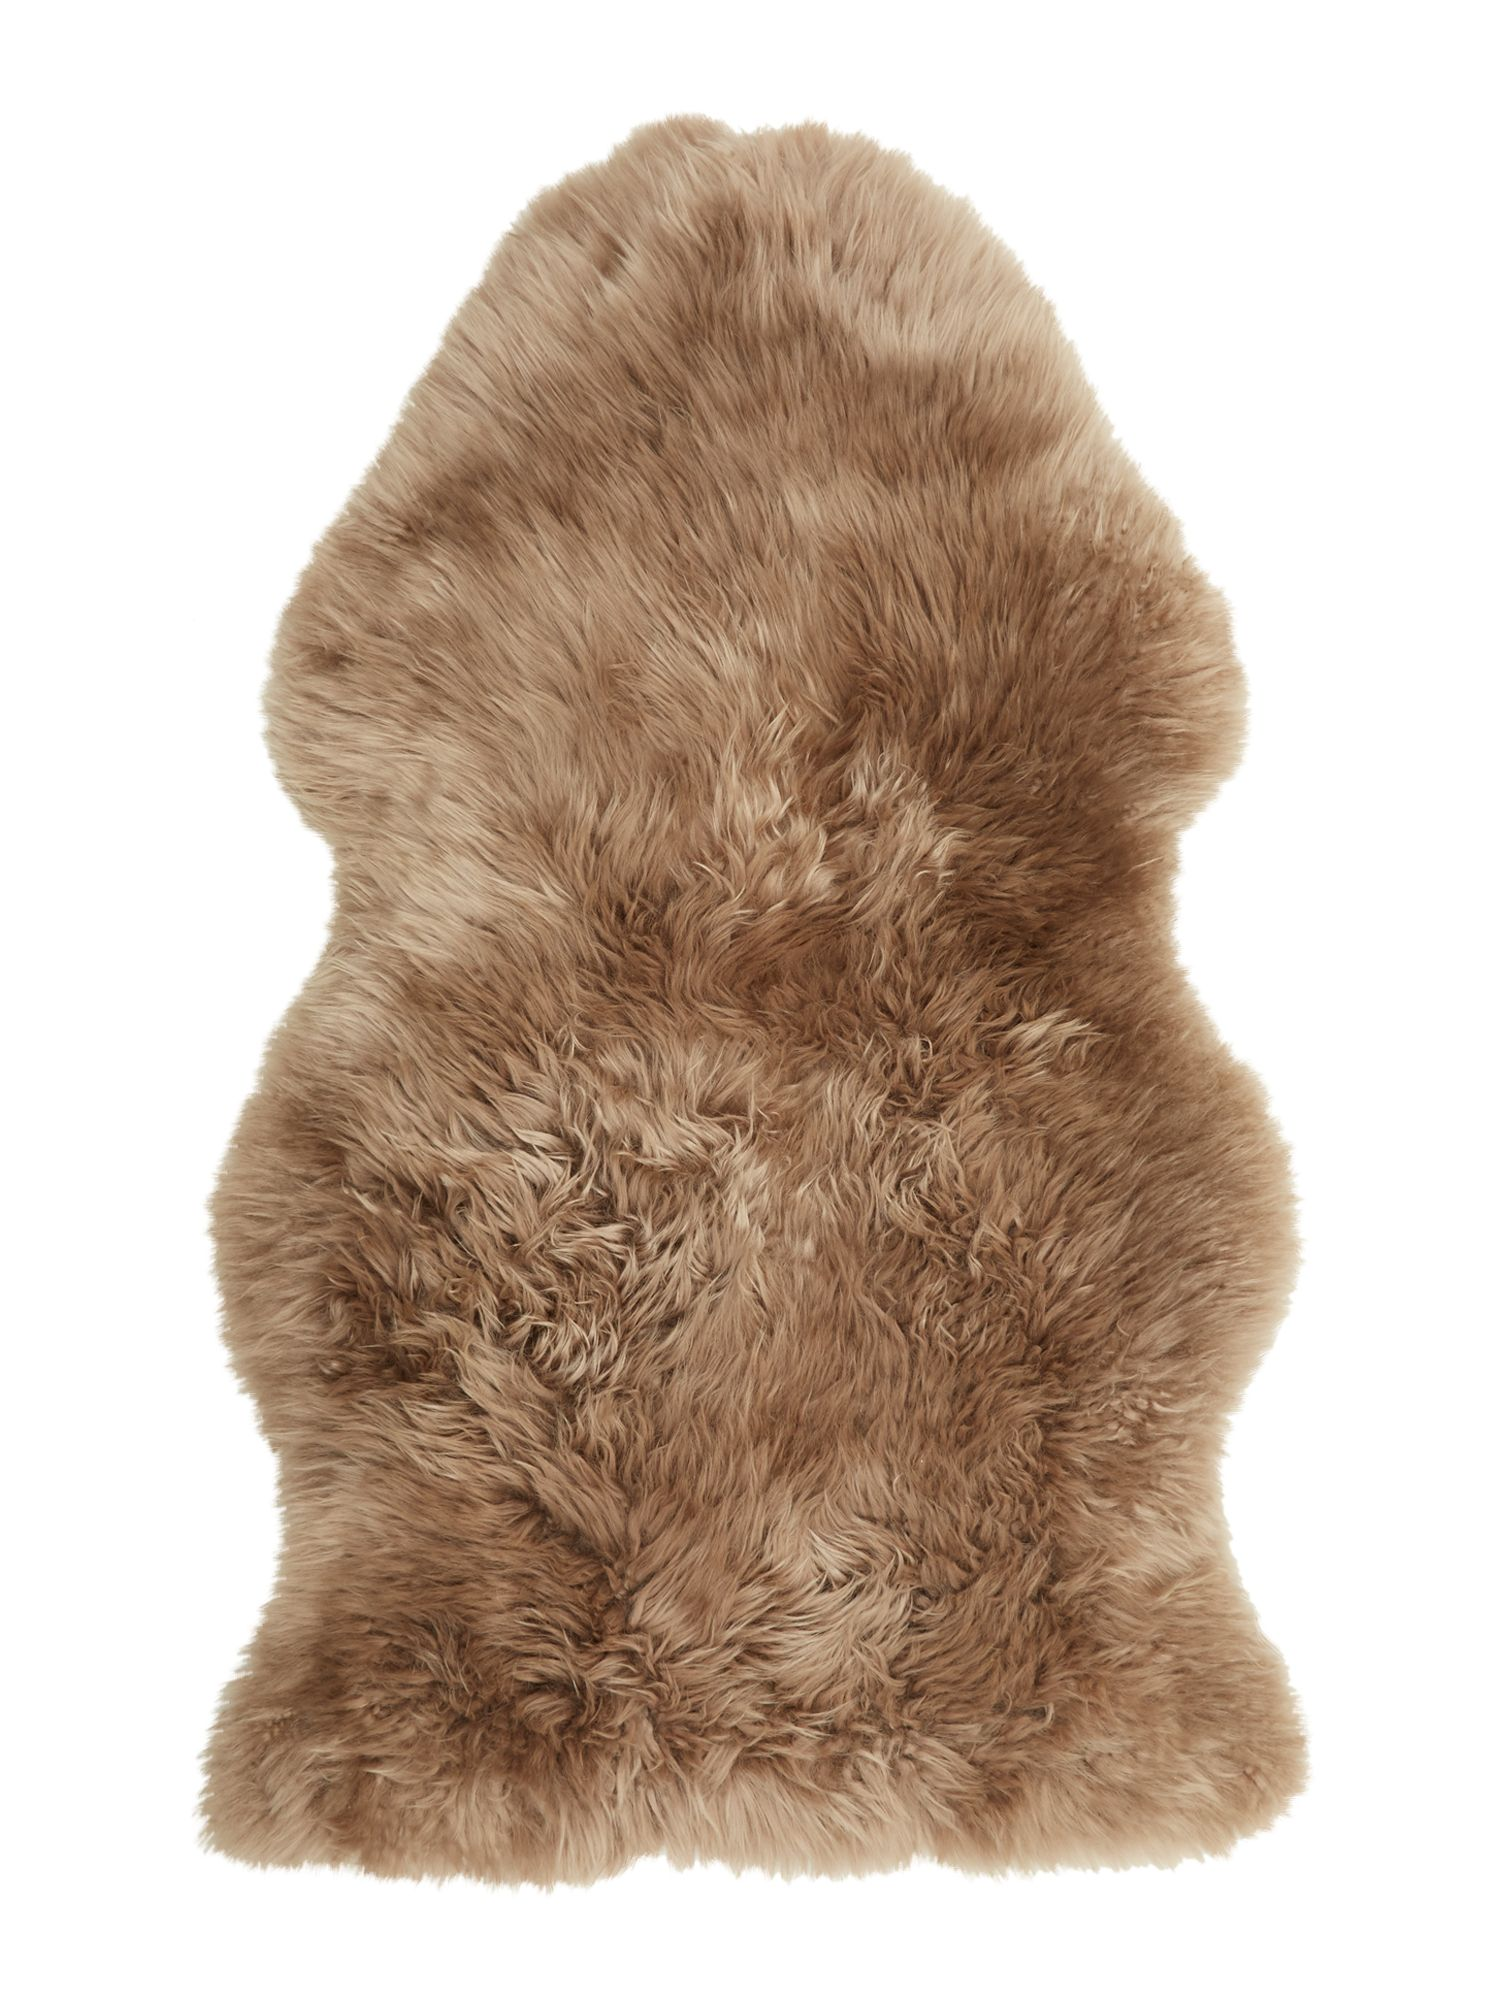 Linea Natural sheepskin, almond